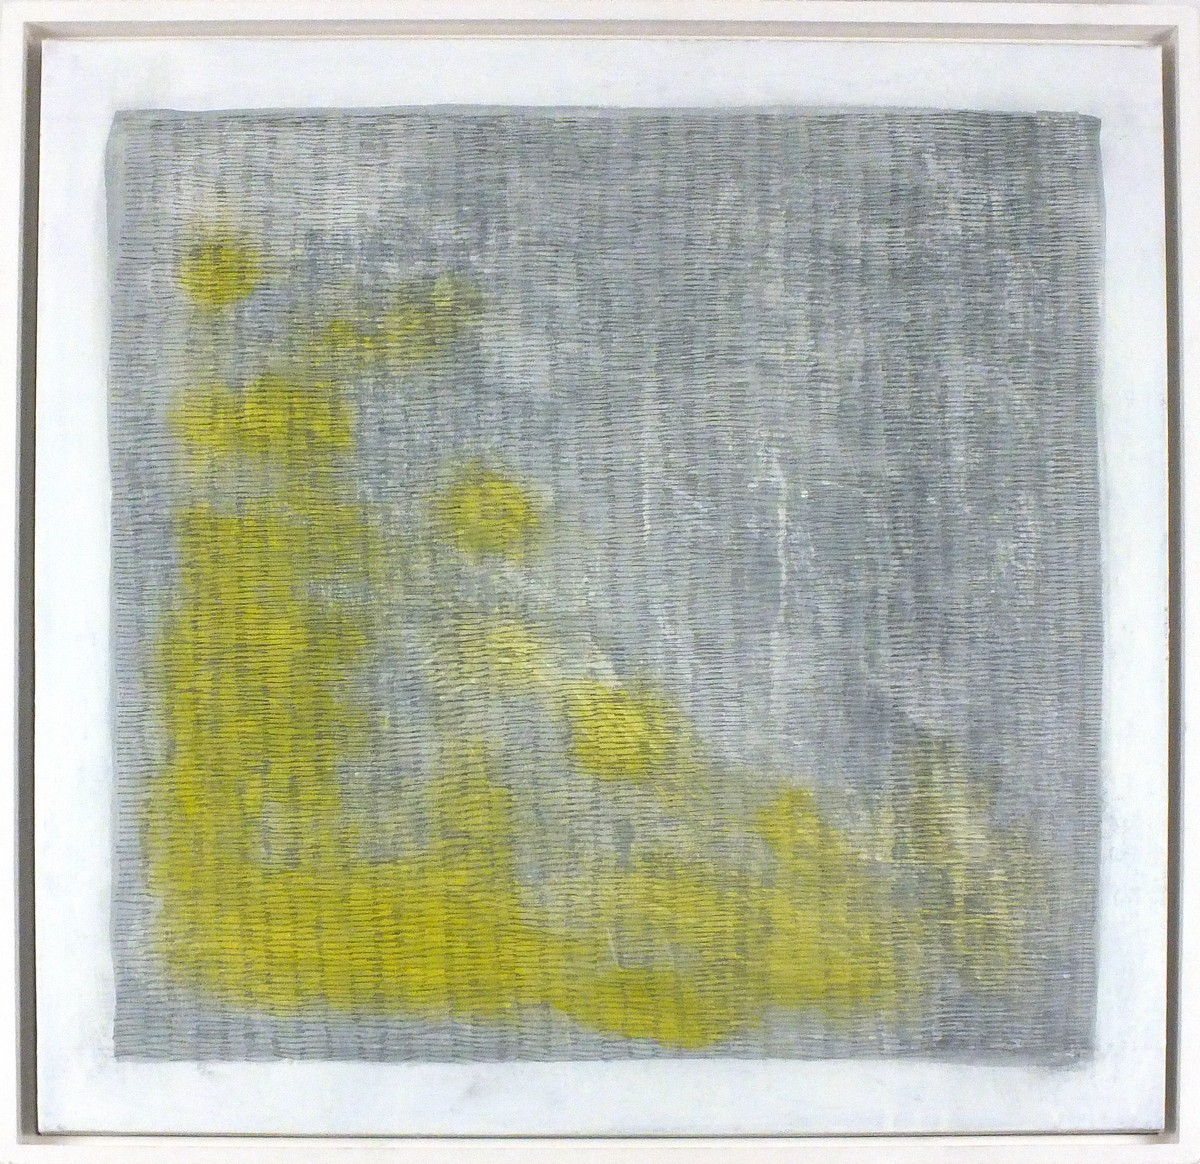 Lot 39 - Lou JOHNS (British b. 1970) Pendeen - abstract, Acrylic on canvas, Signed lower right, titled verso,